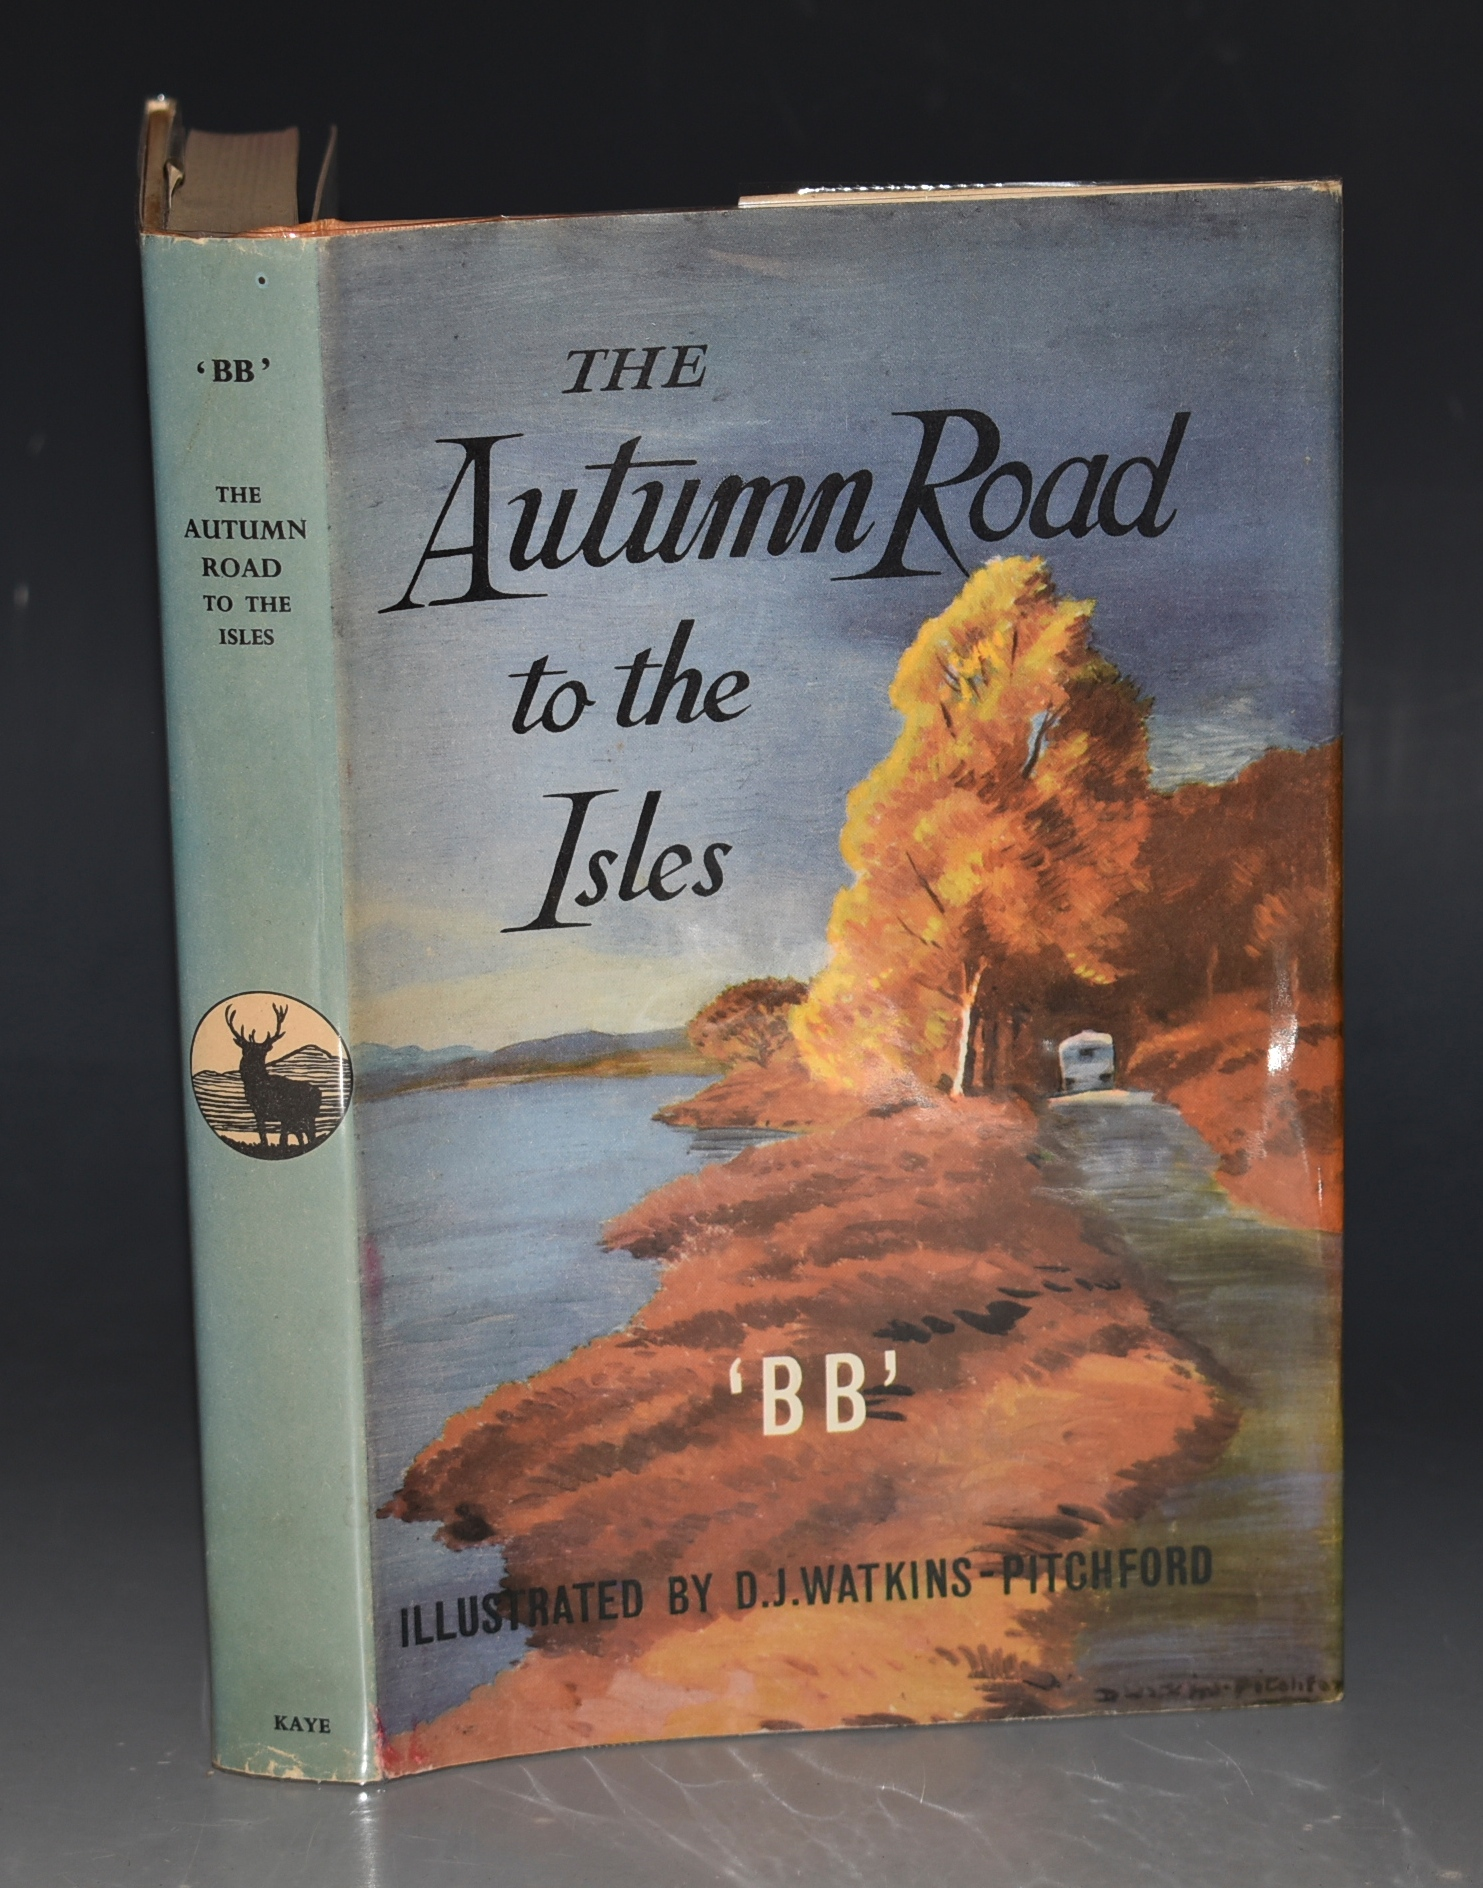 Image for The Autumn Road to the Isles. Illustrated by D.J. WATKINS-PITCHFORD.